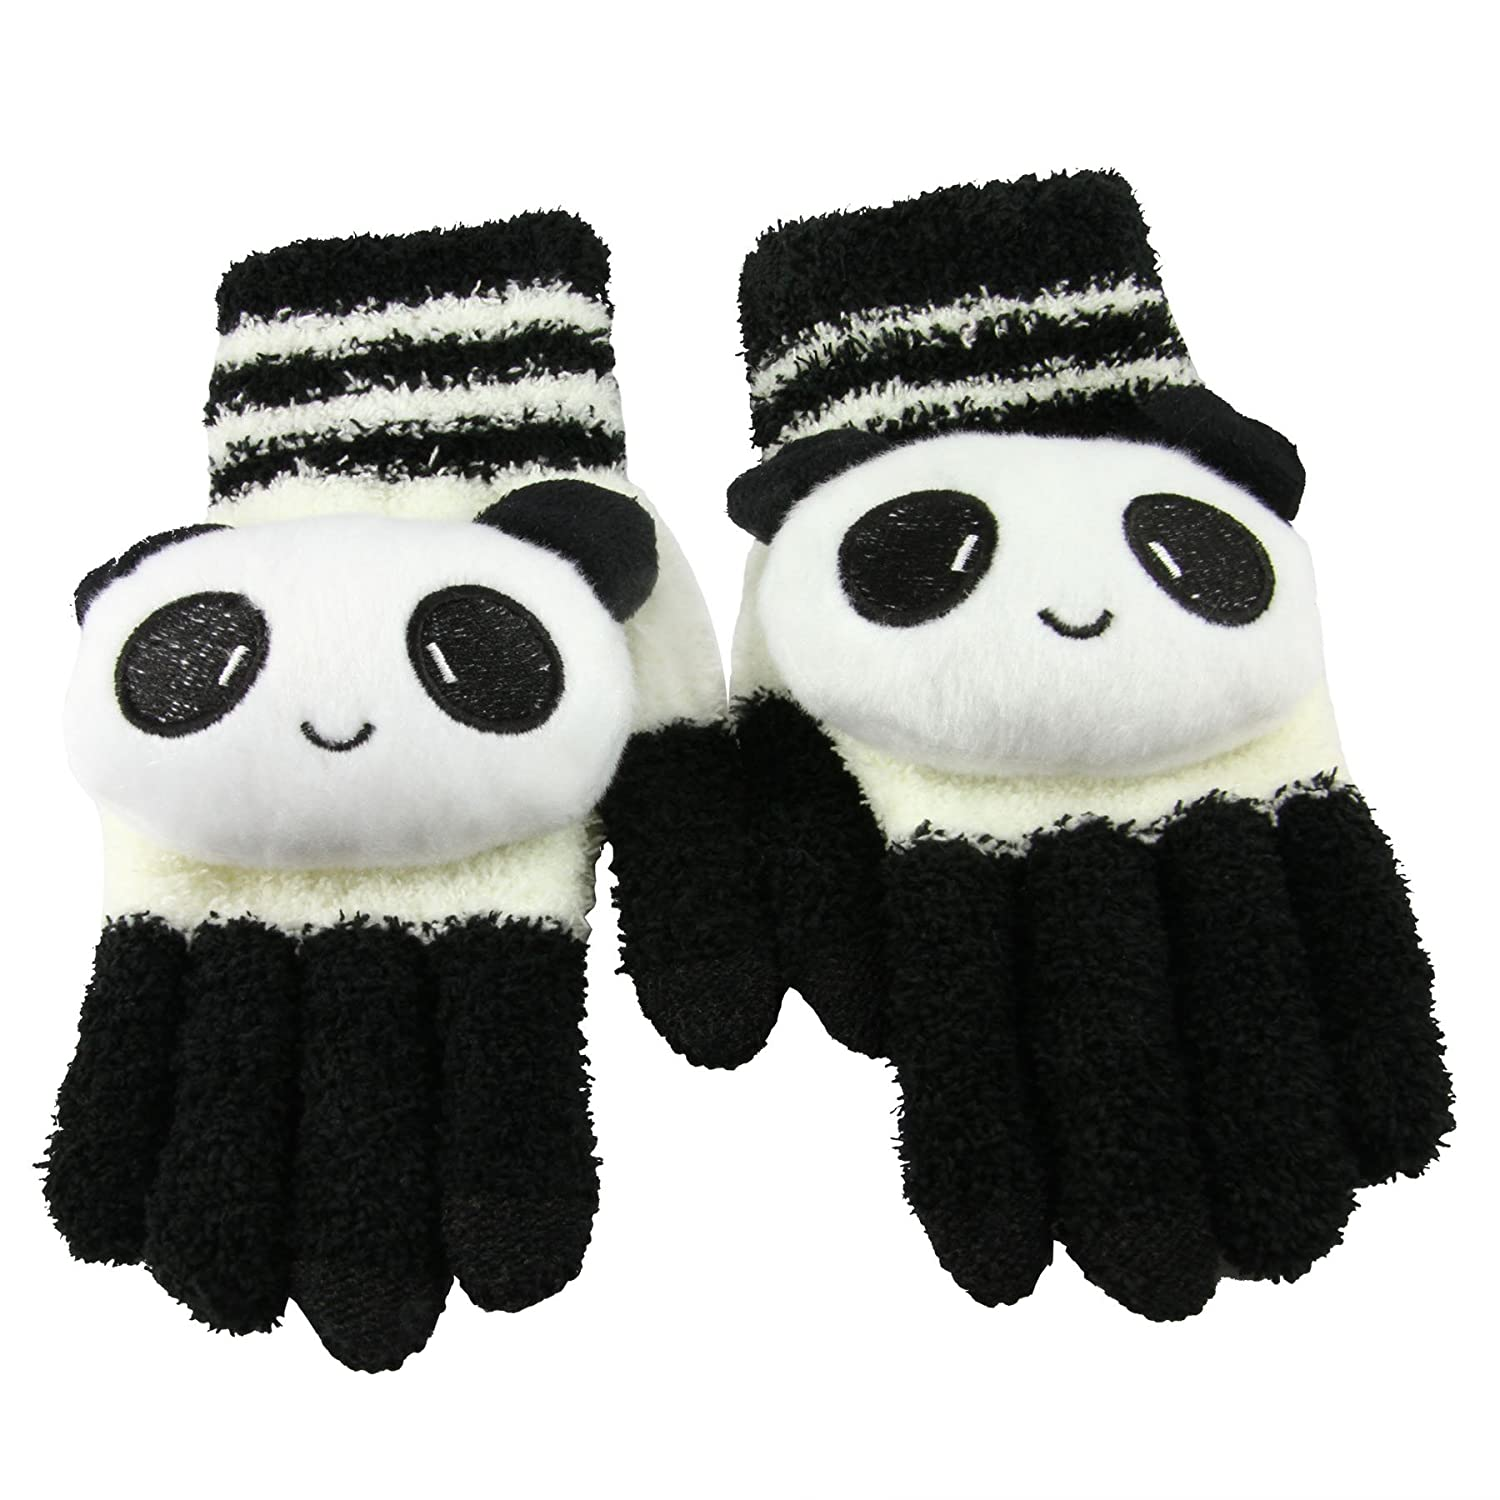 Texting Gloves for Girls//Ladies Black White Panda Great Gift for Christmas Day// New Year iPhone Gloves Greenery Cute Winter Wool Touchscreen Gloves Mitten